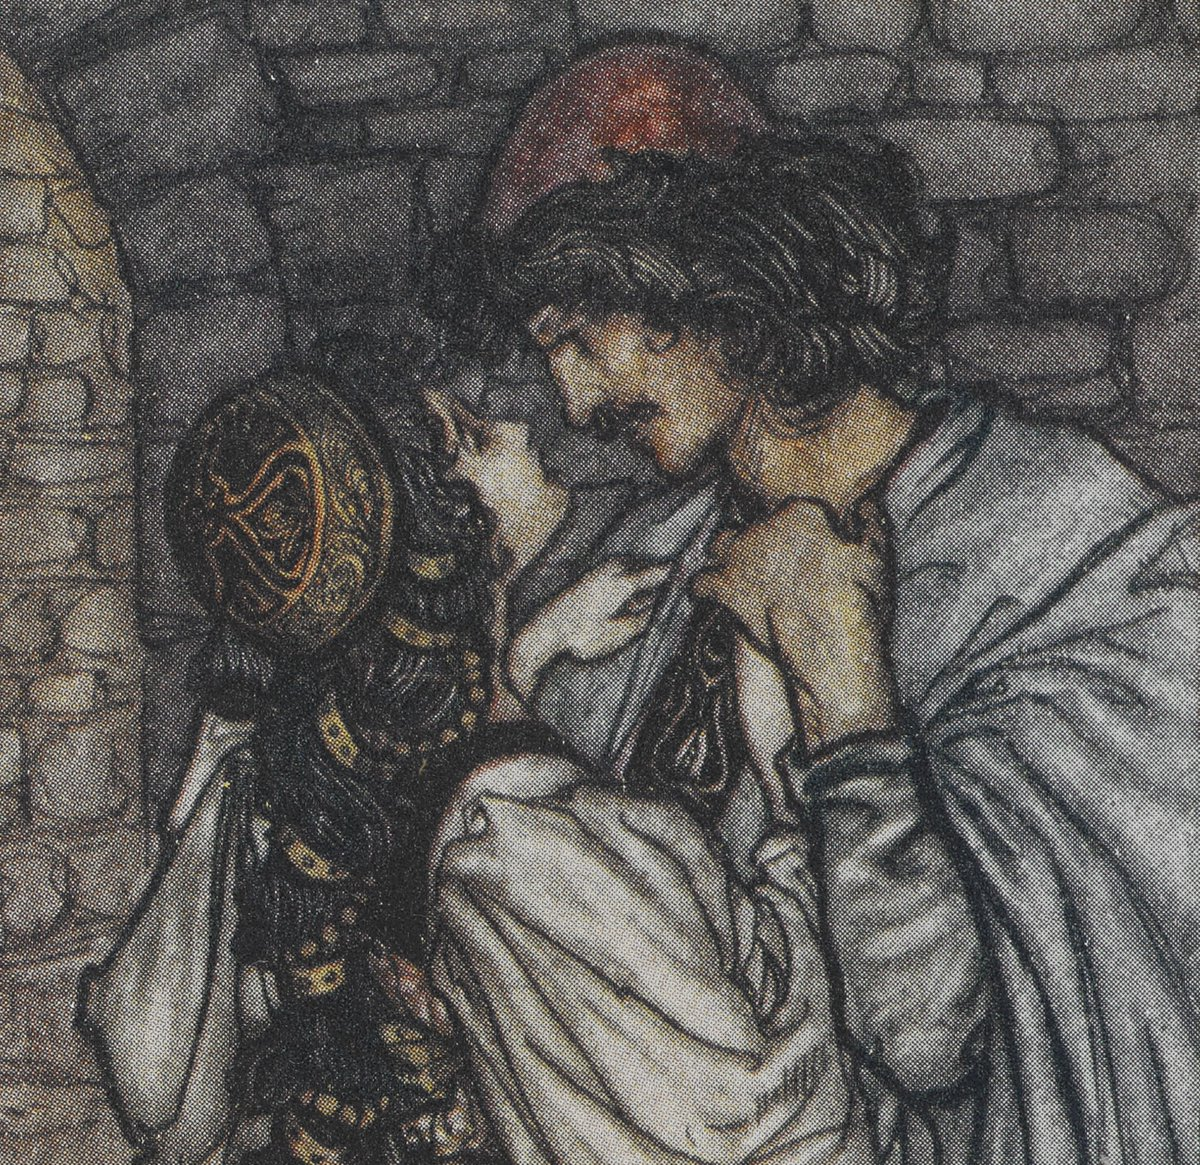 Romeo and Juliet, wildly in love, but were they really well-matched?   Which famous figures from literature would you pair up and why?   Img: Shelfmark 11765.s.5 (cropped)